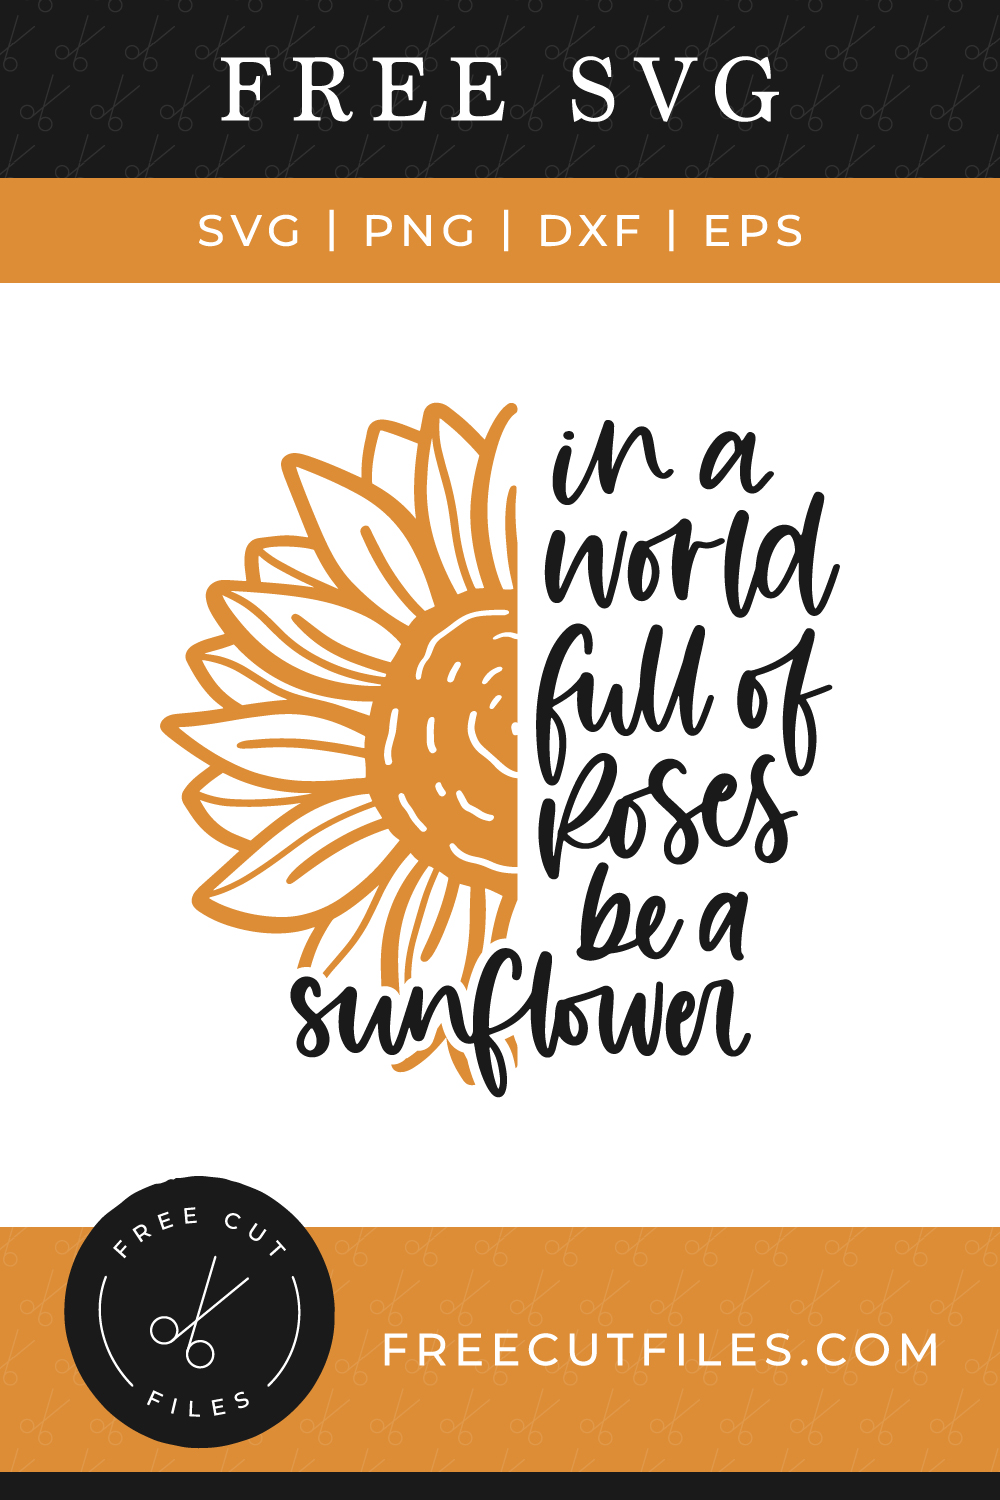 Free In a world full of roses be a sunflower SVG